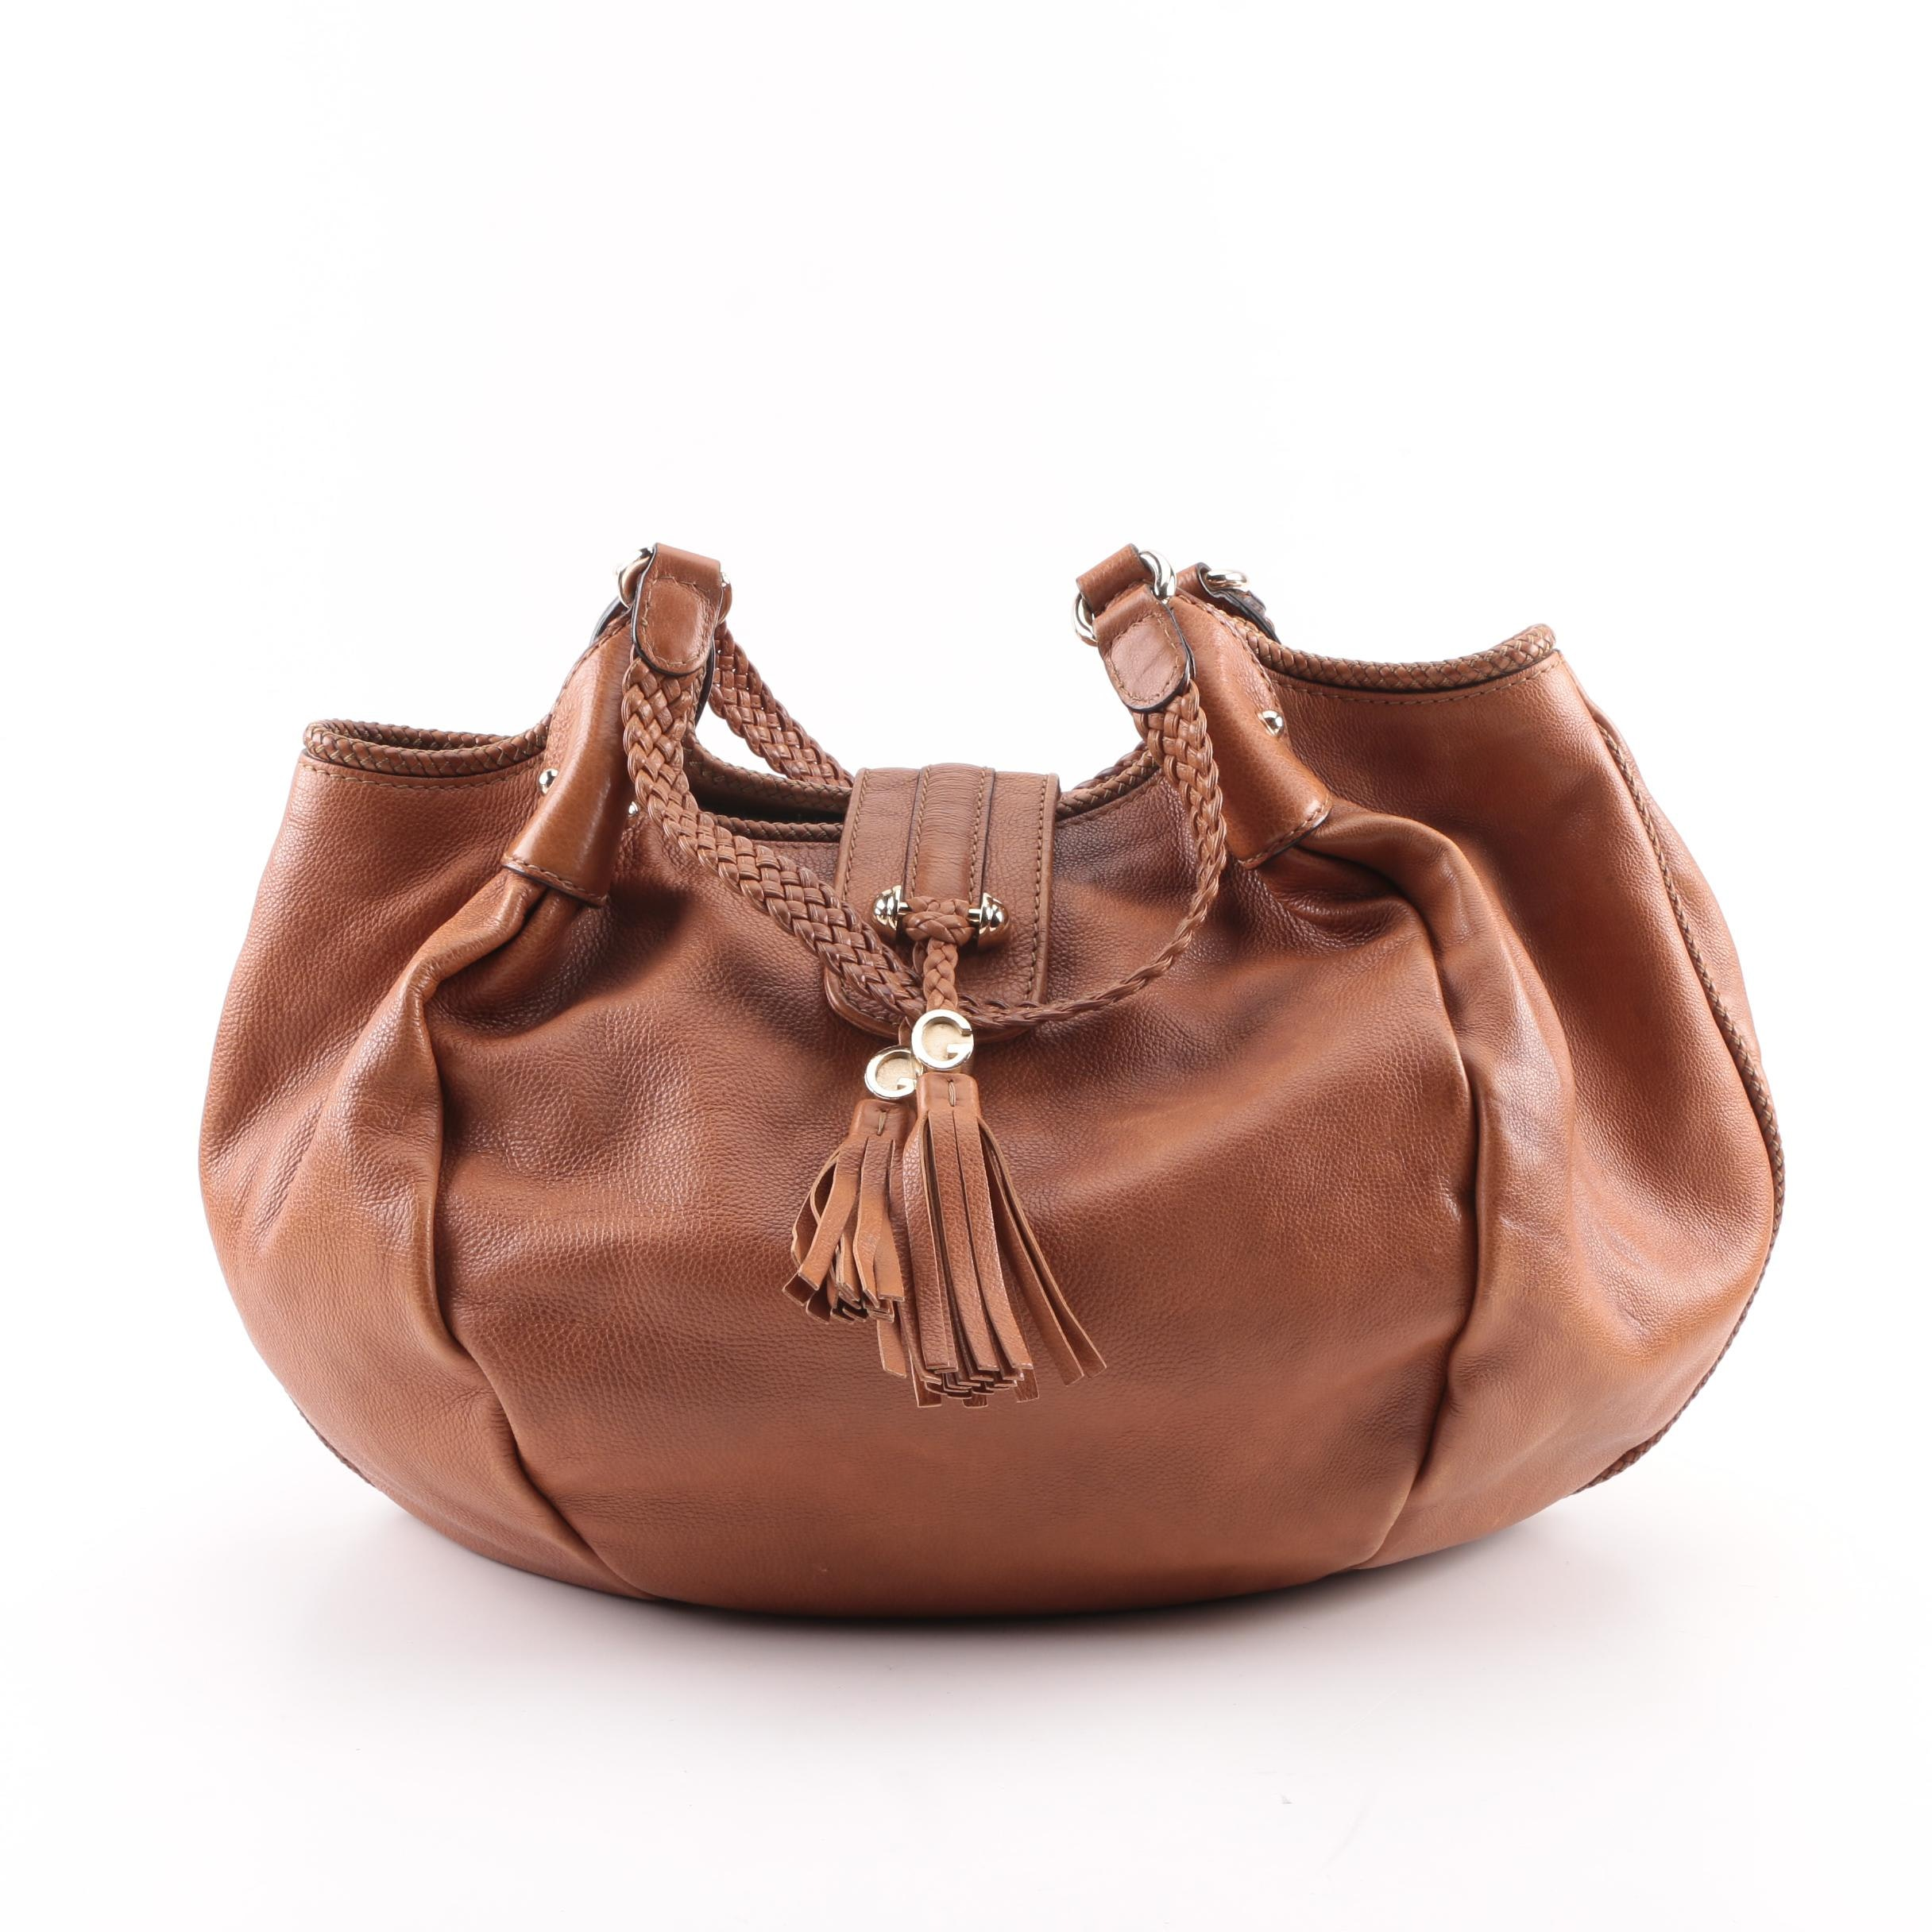 Gucci Brown Pebbled Leather Hobo Bag